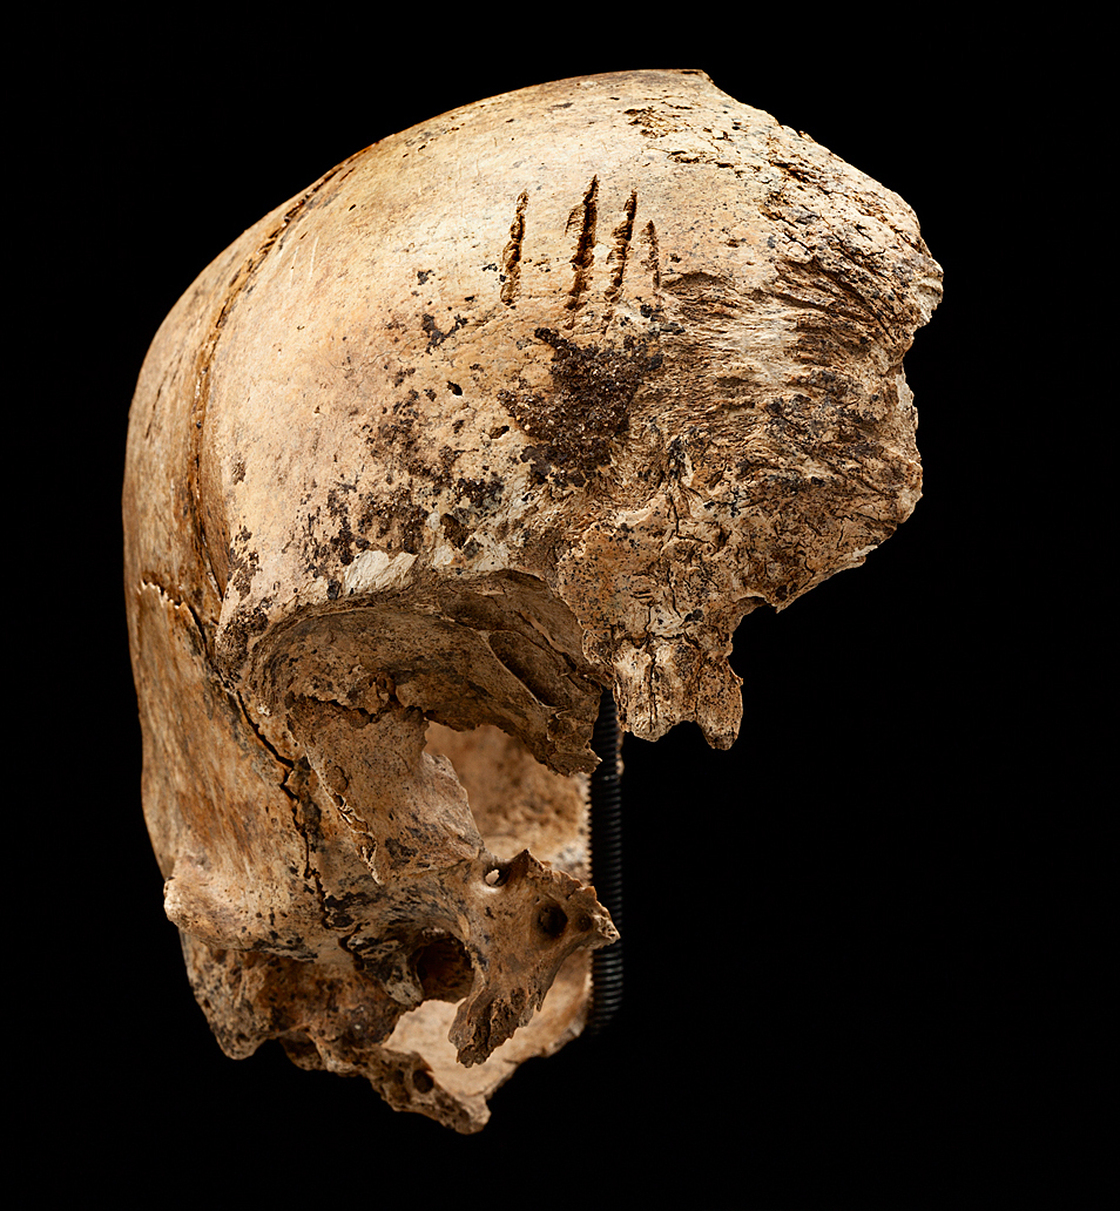 """The four cuts at the top of this skull """"are clear chops to the forehead,"""" says Smithsonian forensic anthropologist Douglas Owsley. Based on forensic evidence, researchers think the blows were made after the person died."""